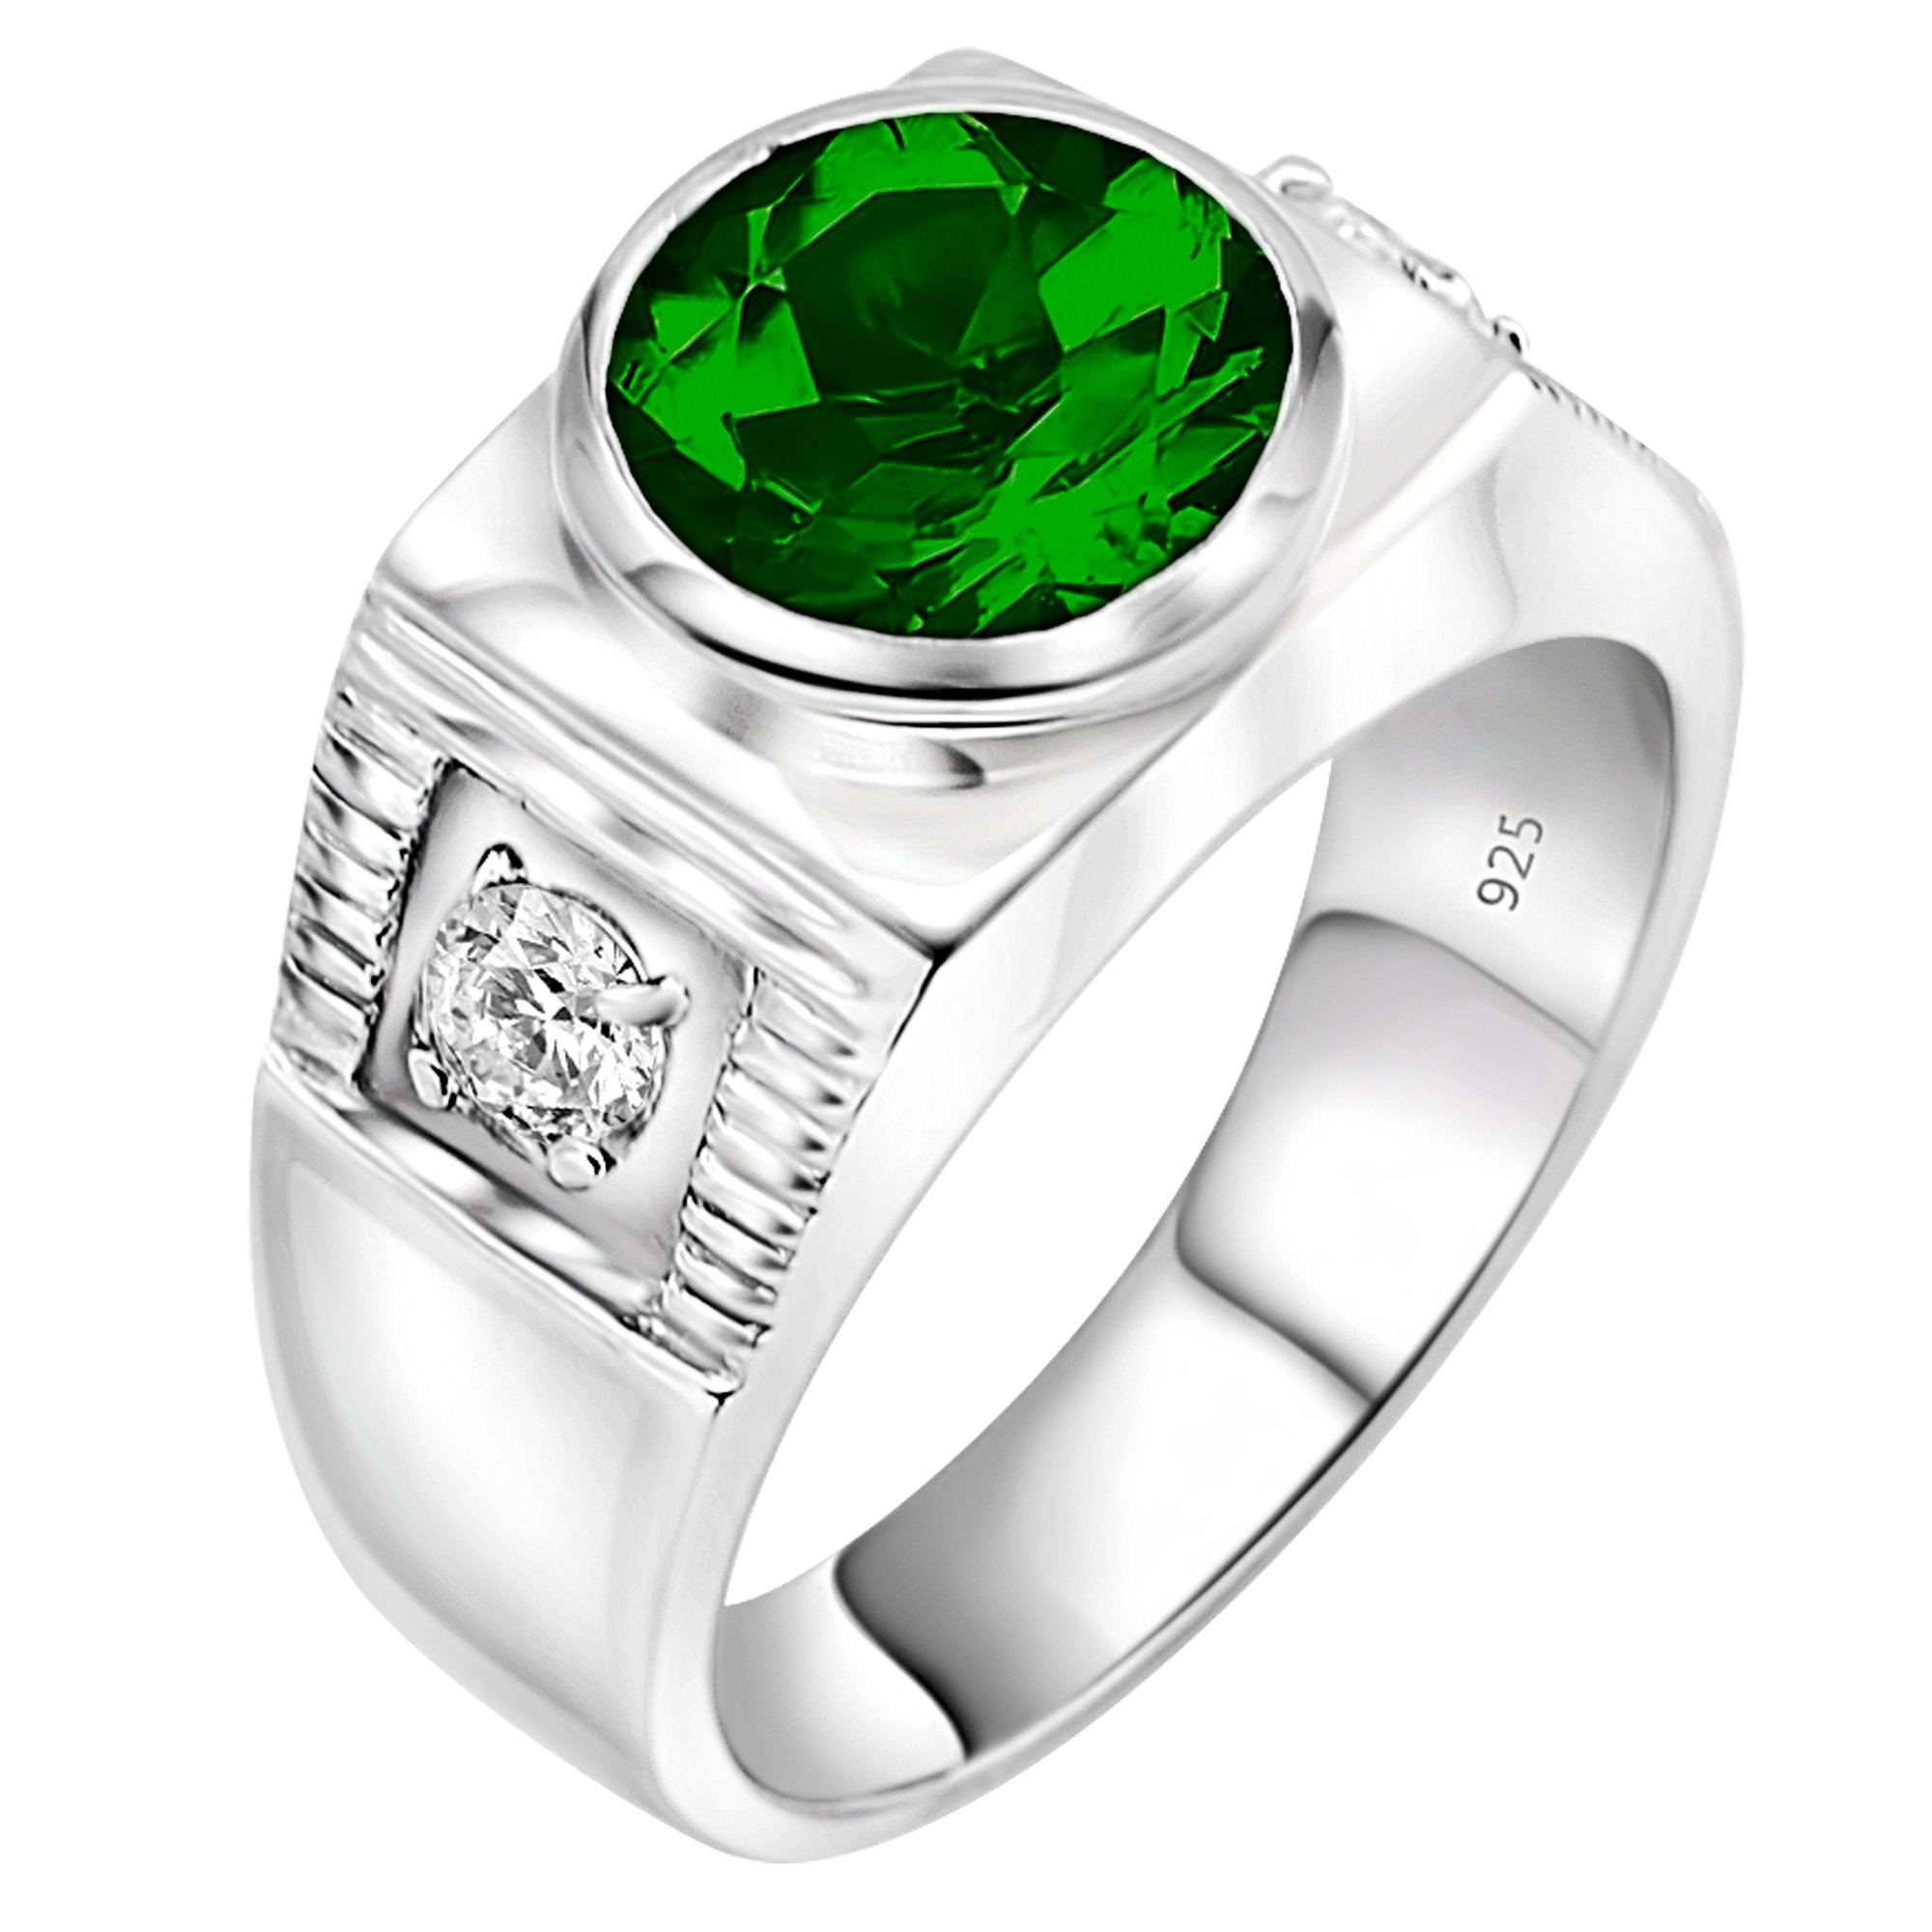 Men's Sterling Silver .925 Ring with Green Round Center CZ Stone and 2 White Cubic Zirconia (CZ) Stones